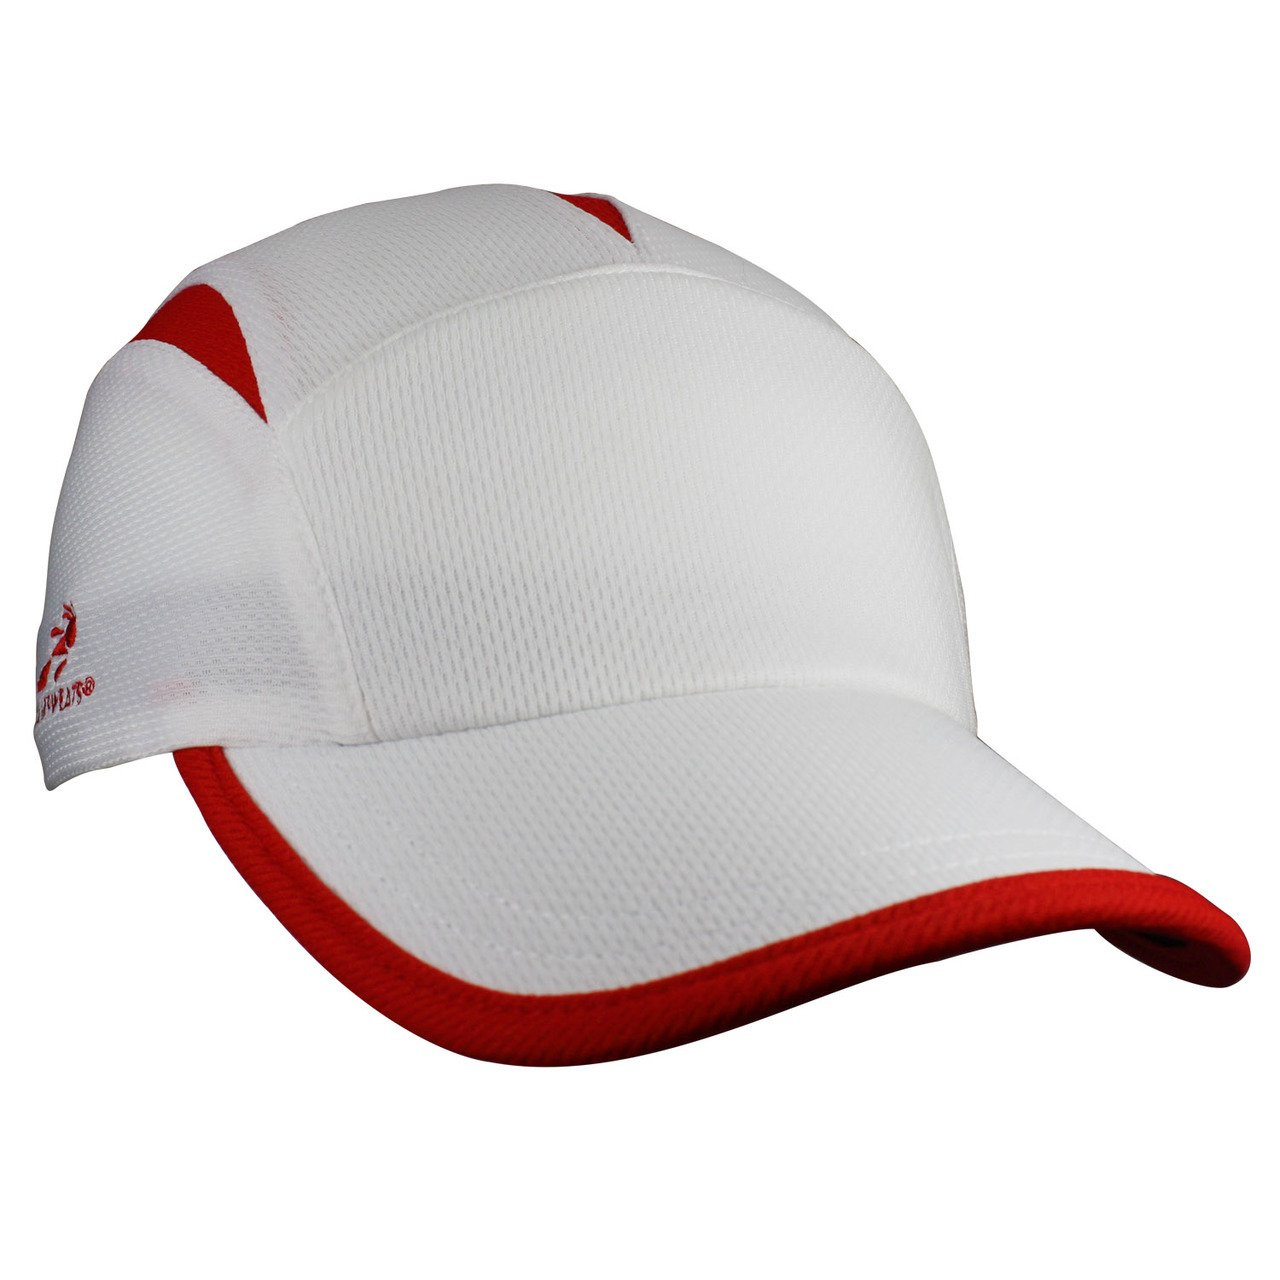 Headsweats Go Hat, White/Red